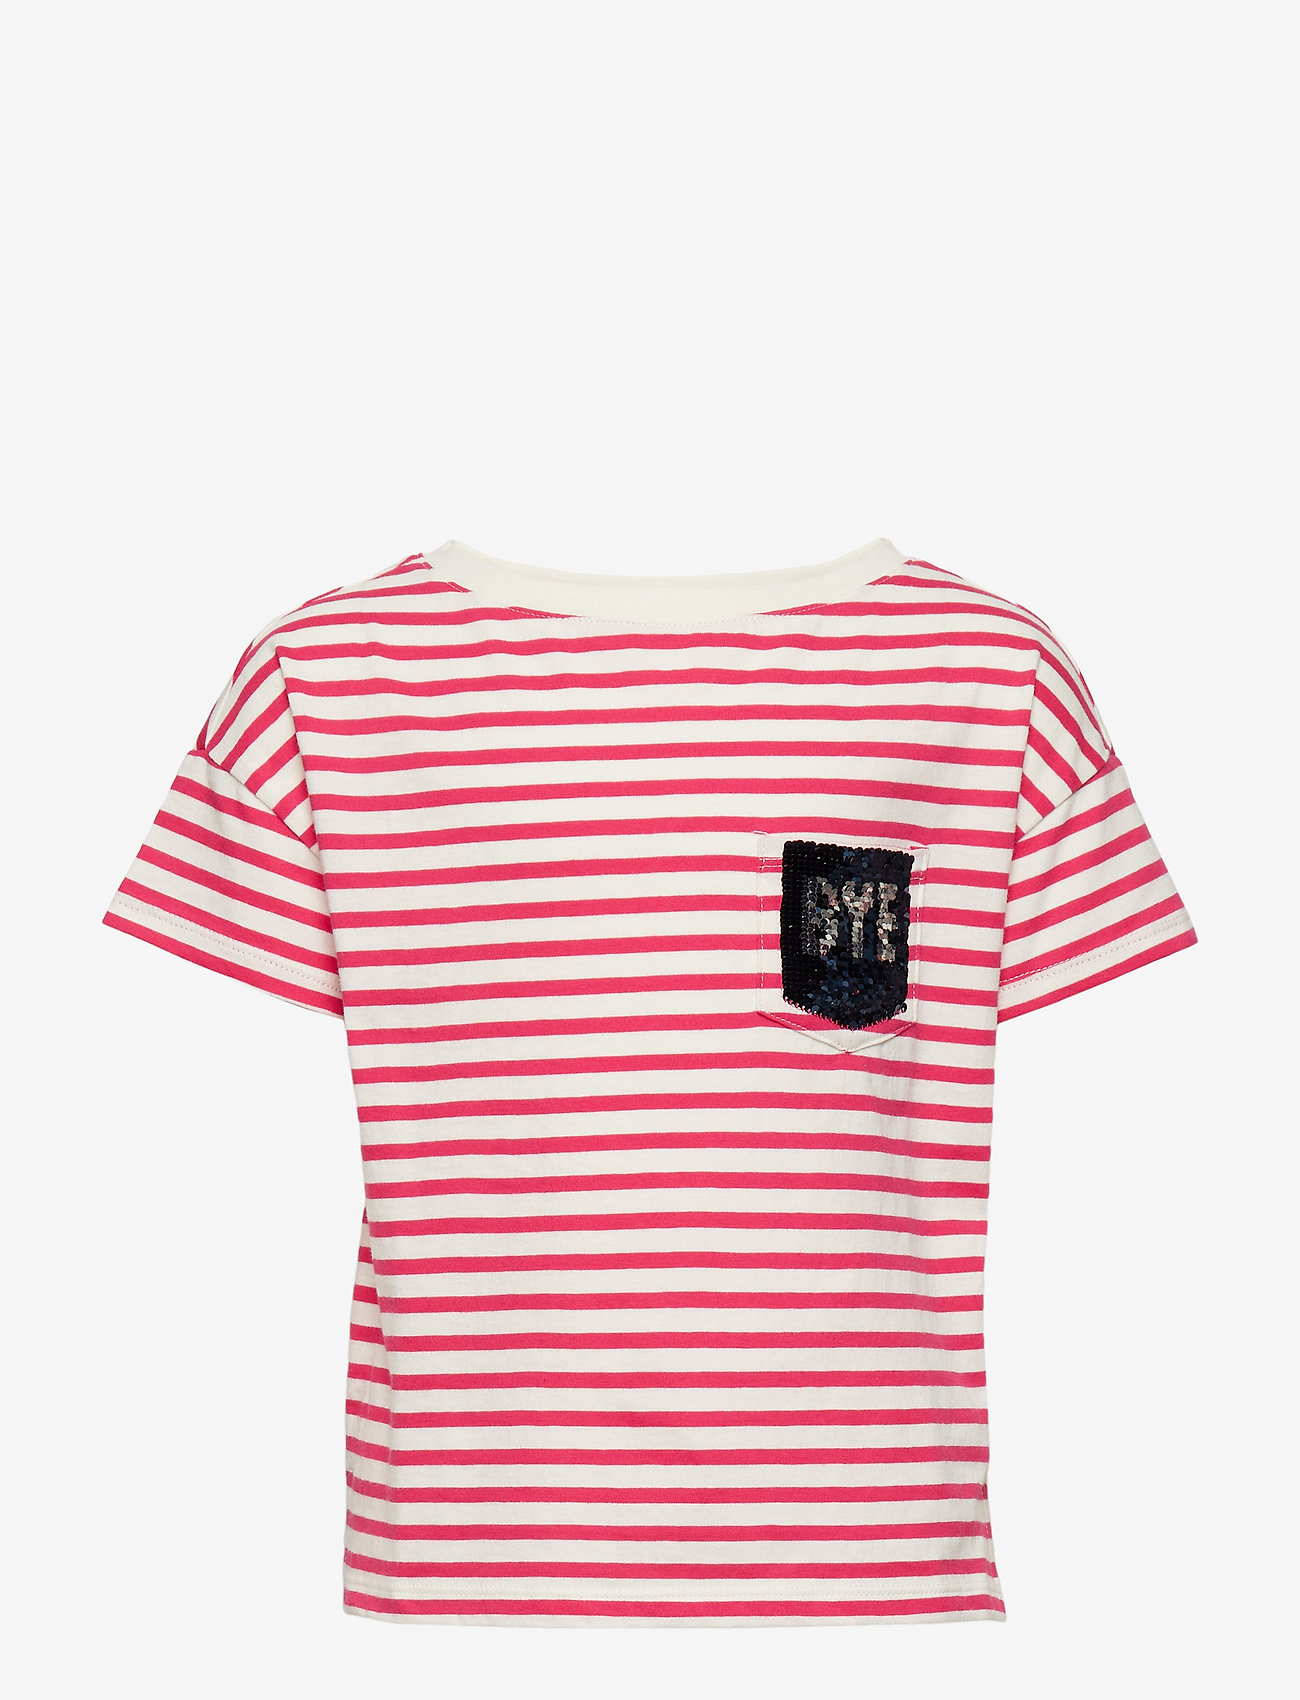 Gap Kids Flippy Sequin Graphic T-shirt - Överdelar Pink Stripe